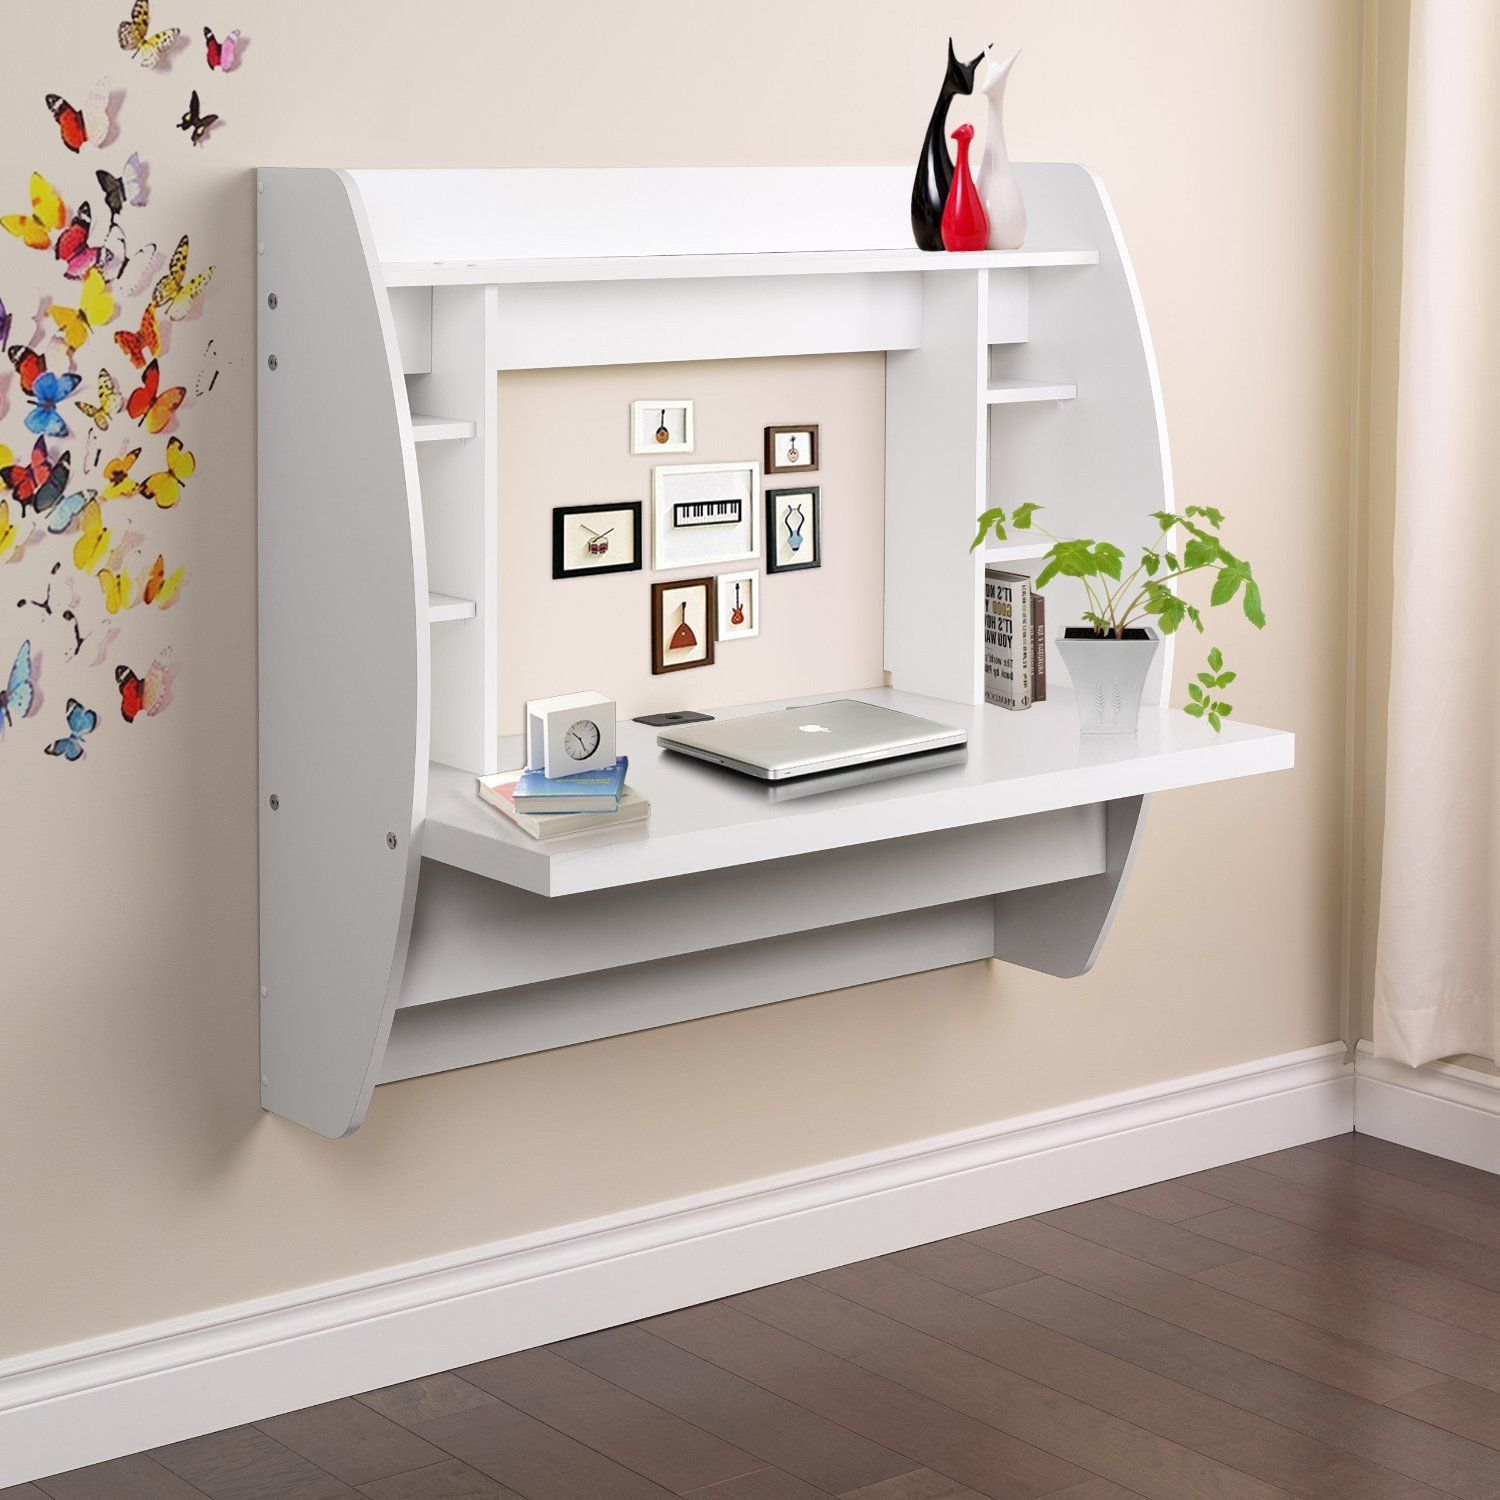 Umax Wall Mounted Floating Desk With Storage